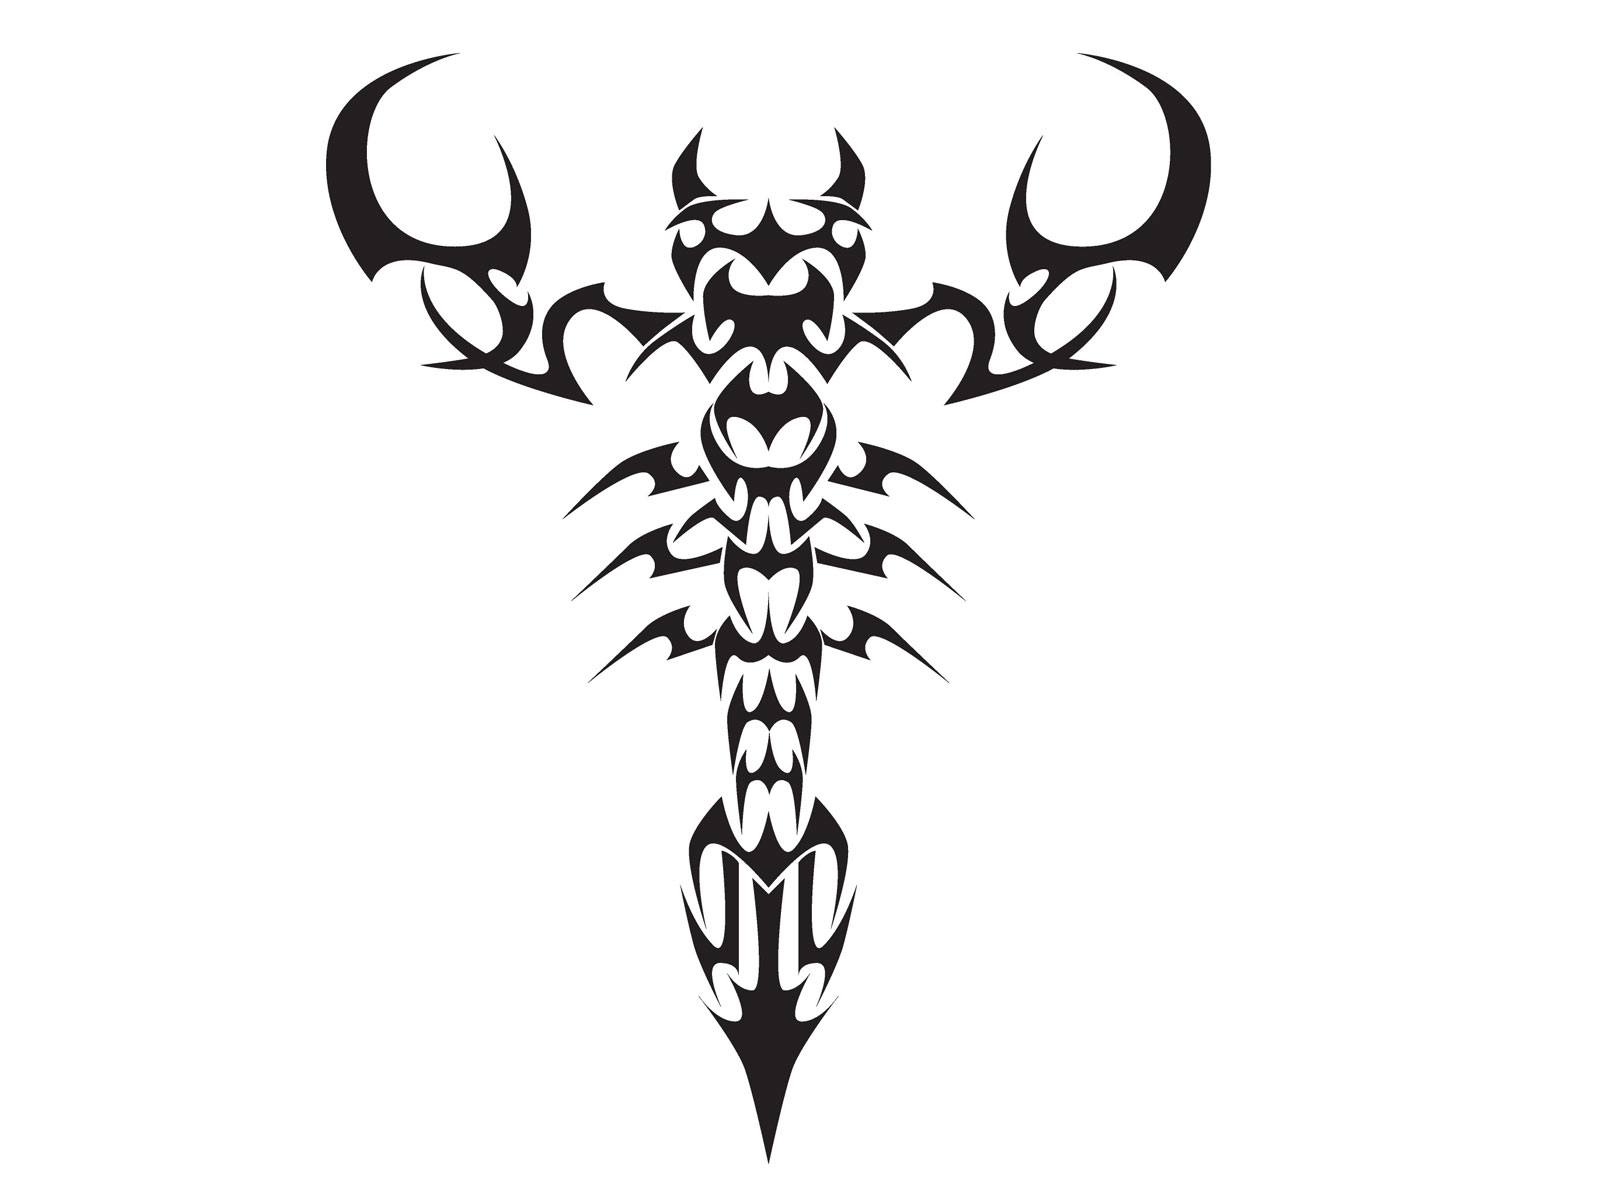 Tribal Tattoo Symbol: Your Scorpio Symbol Tribal Tattoos Sources